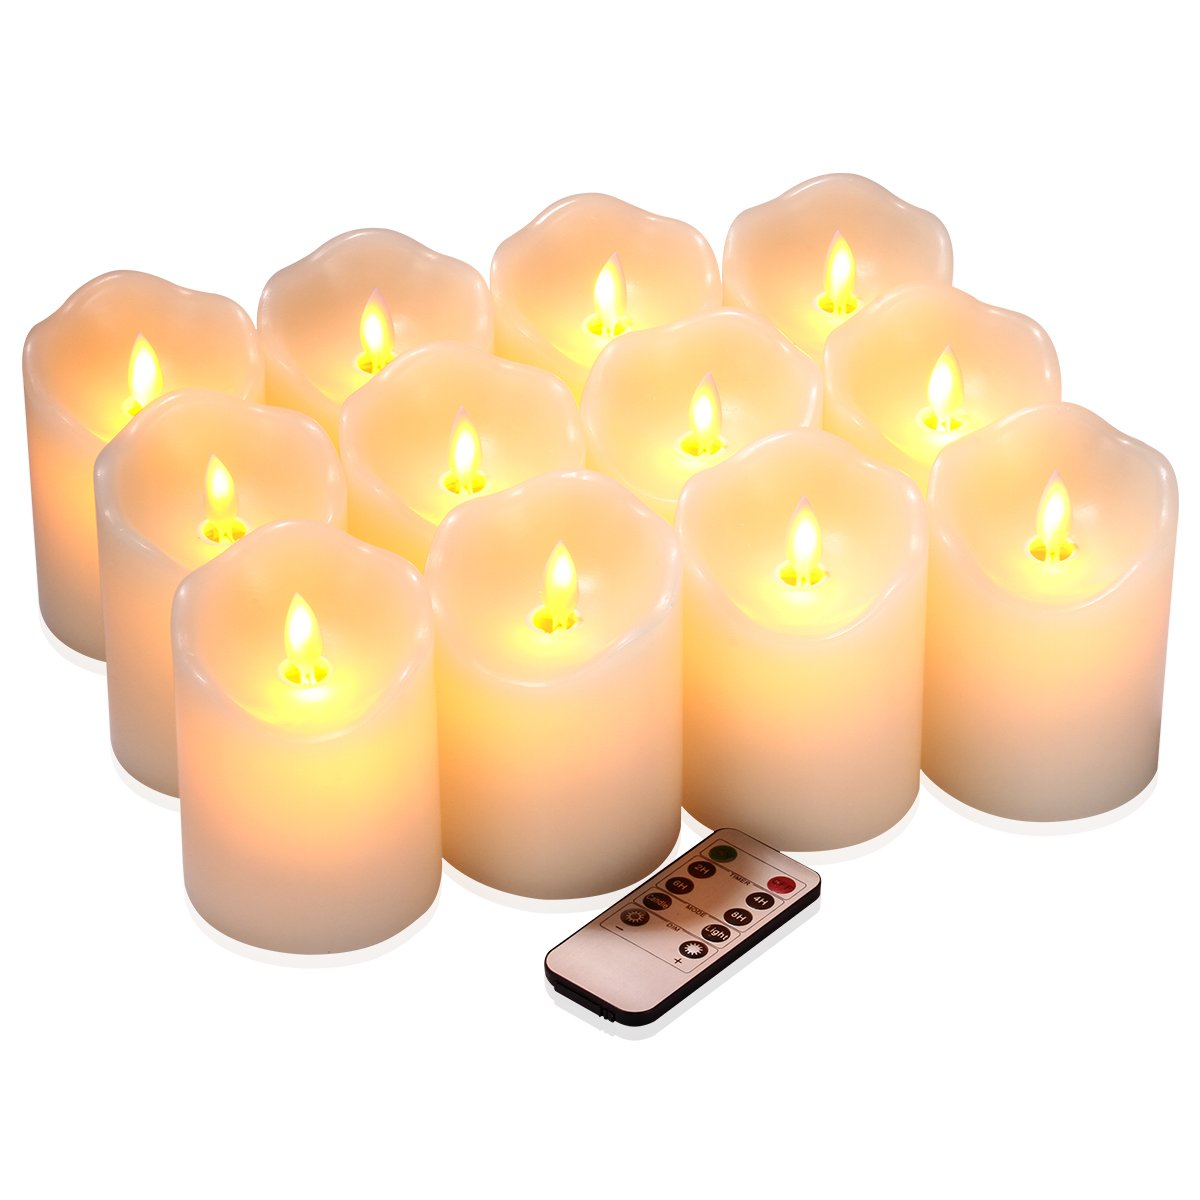 qinxiang Flameless Candles Flickering LED Candles Set of 12 (D:3'' X H:4'') Ivory Real Wax Pillar Battery Operated Candles with Dancing LED Flame &10-Key Remote and Cycling 24 Hours Timer